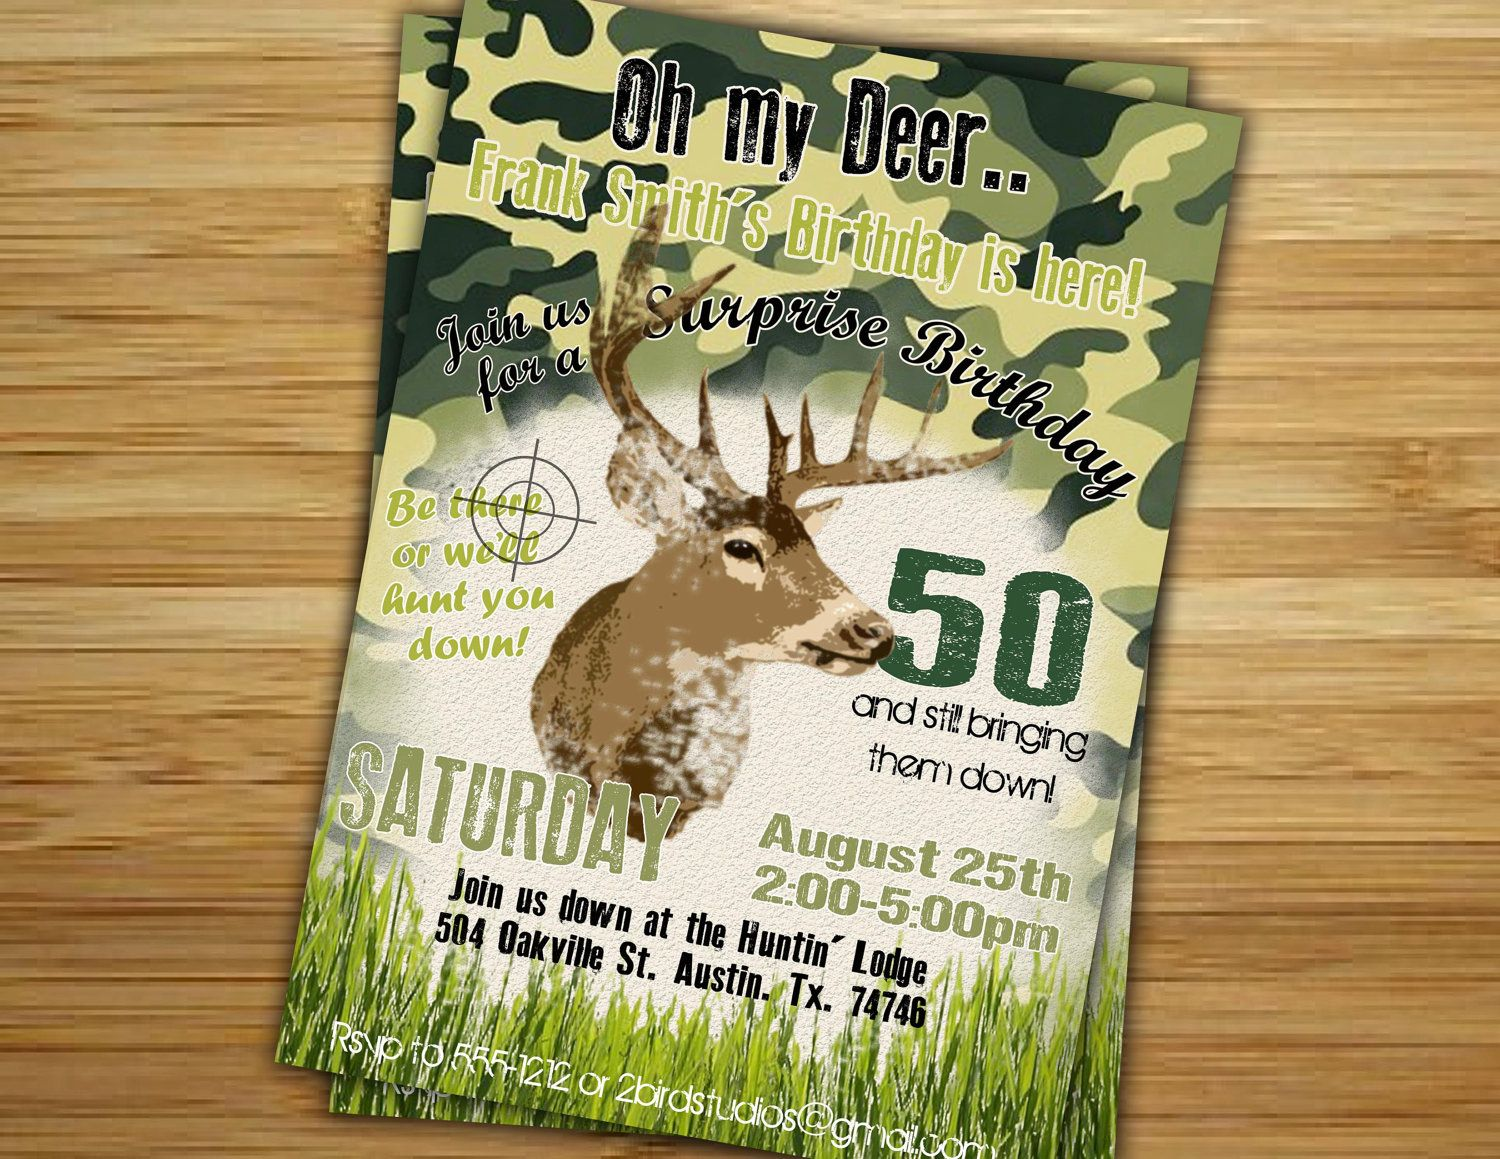 Hunting birthday party invitation invite 30th 40th 50th birthday hunting birthday party invitation invite 30th 40th 50th birthday hunting invitation printable filmwisefo Images